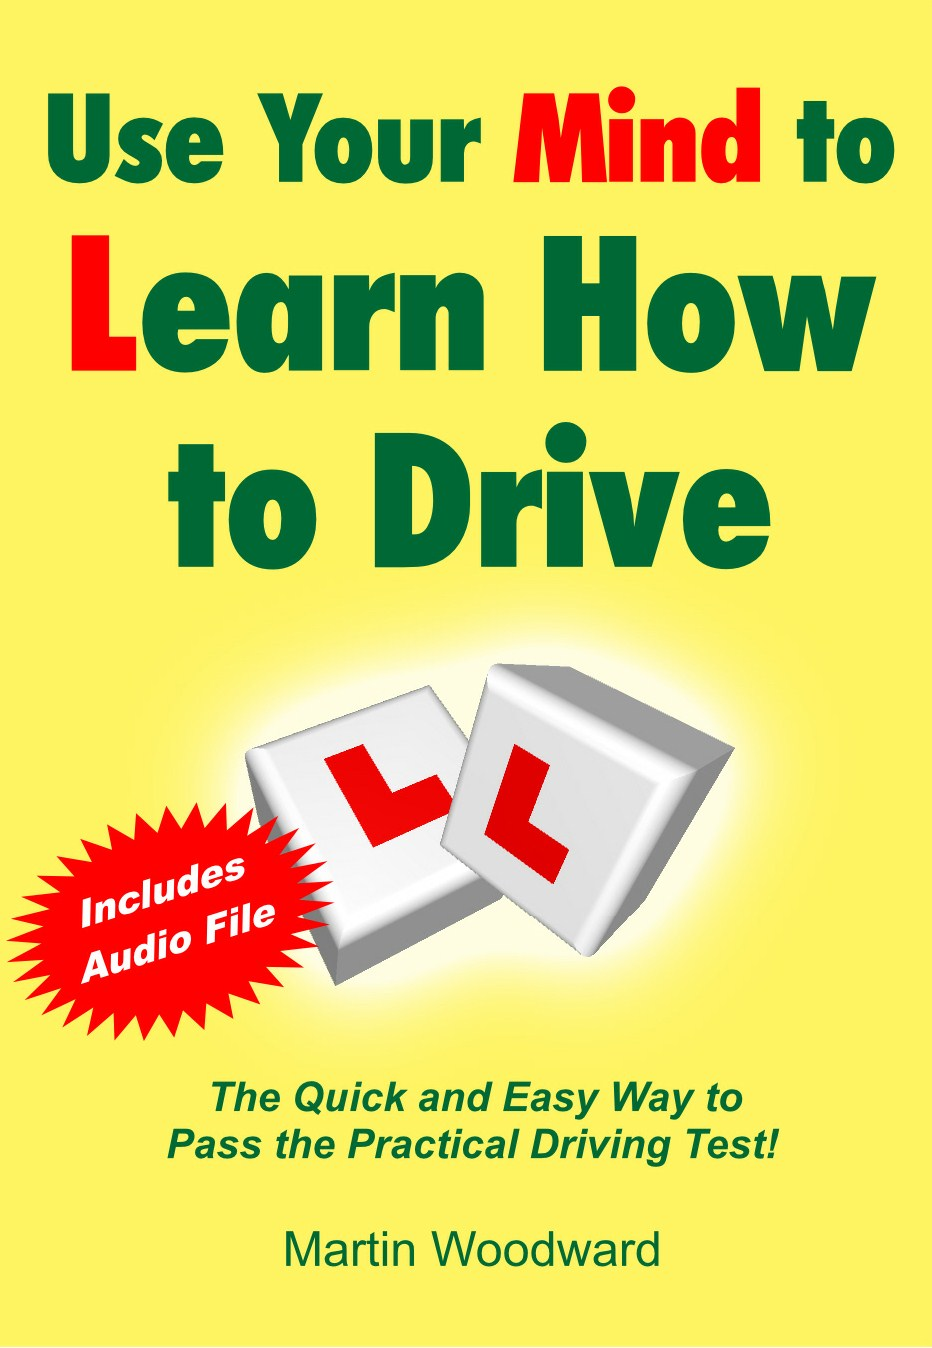 Use Your Mind to Learn How to Drive - The Quick and Easy Way to Pass the Practical Driving Test